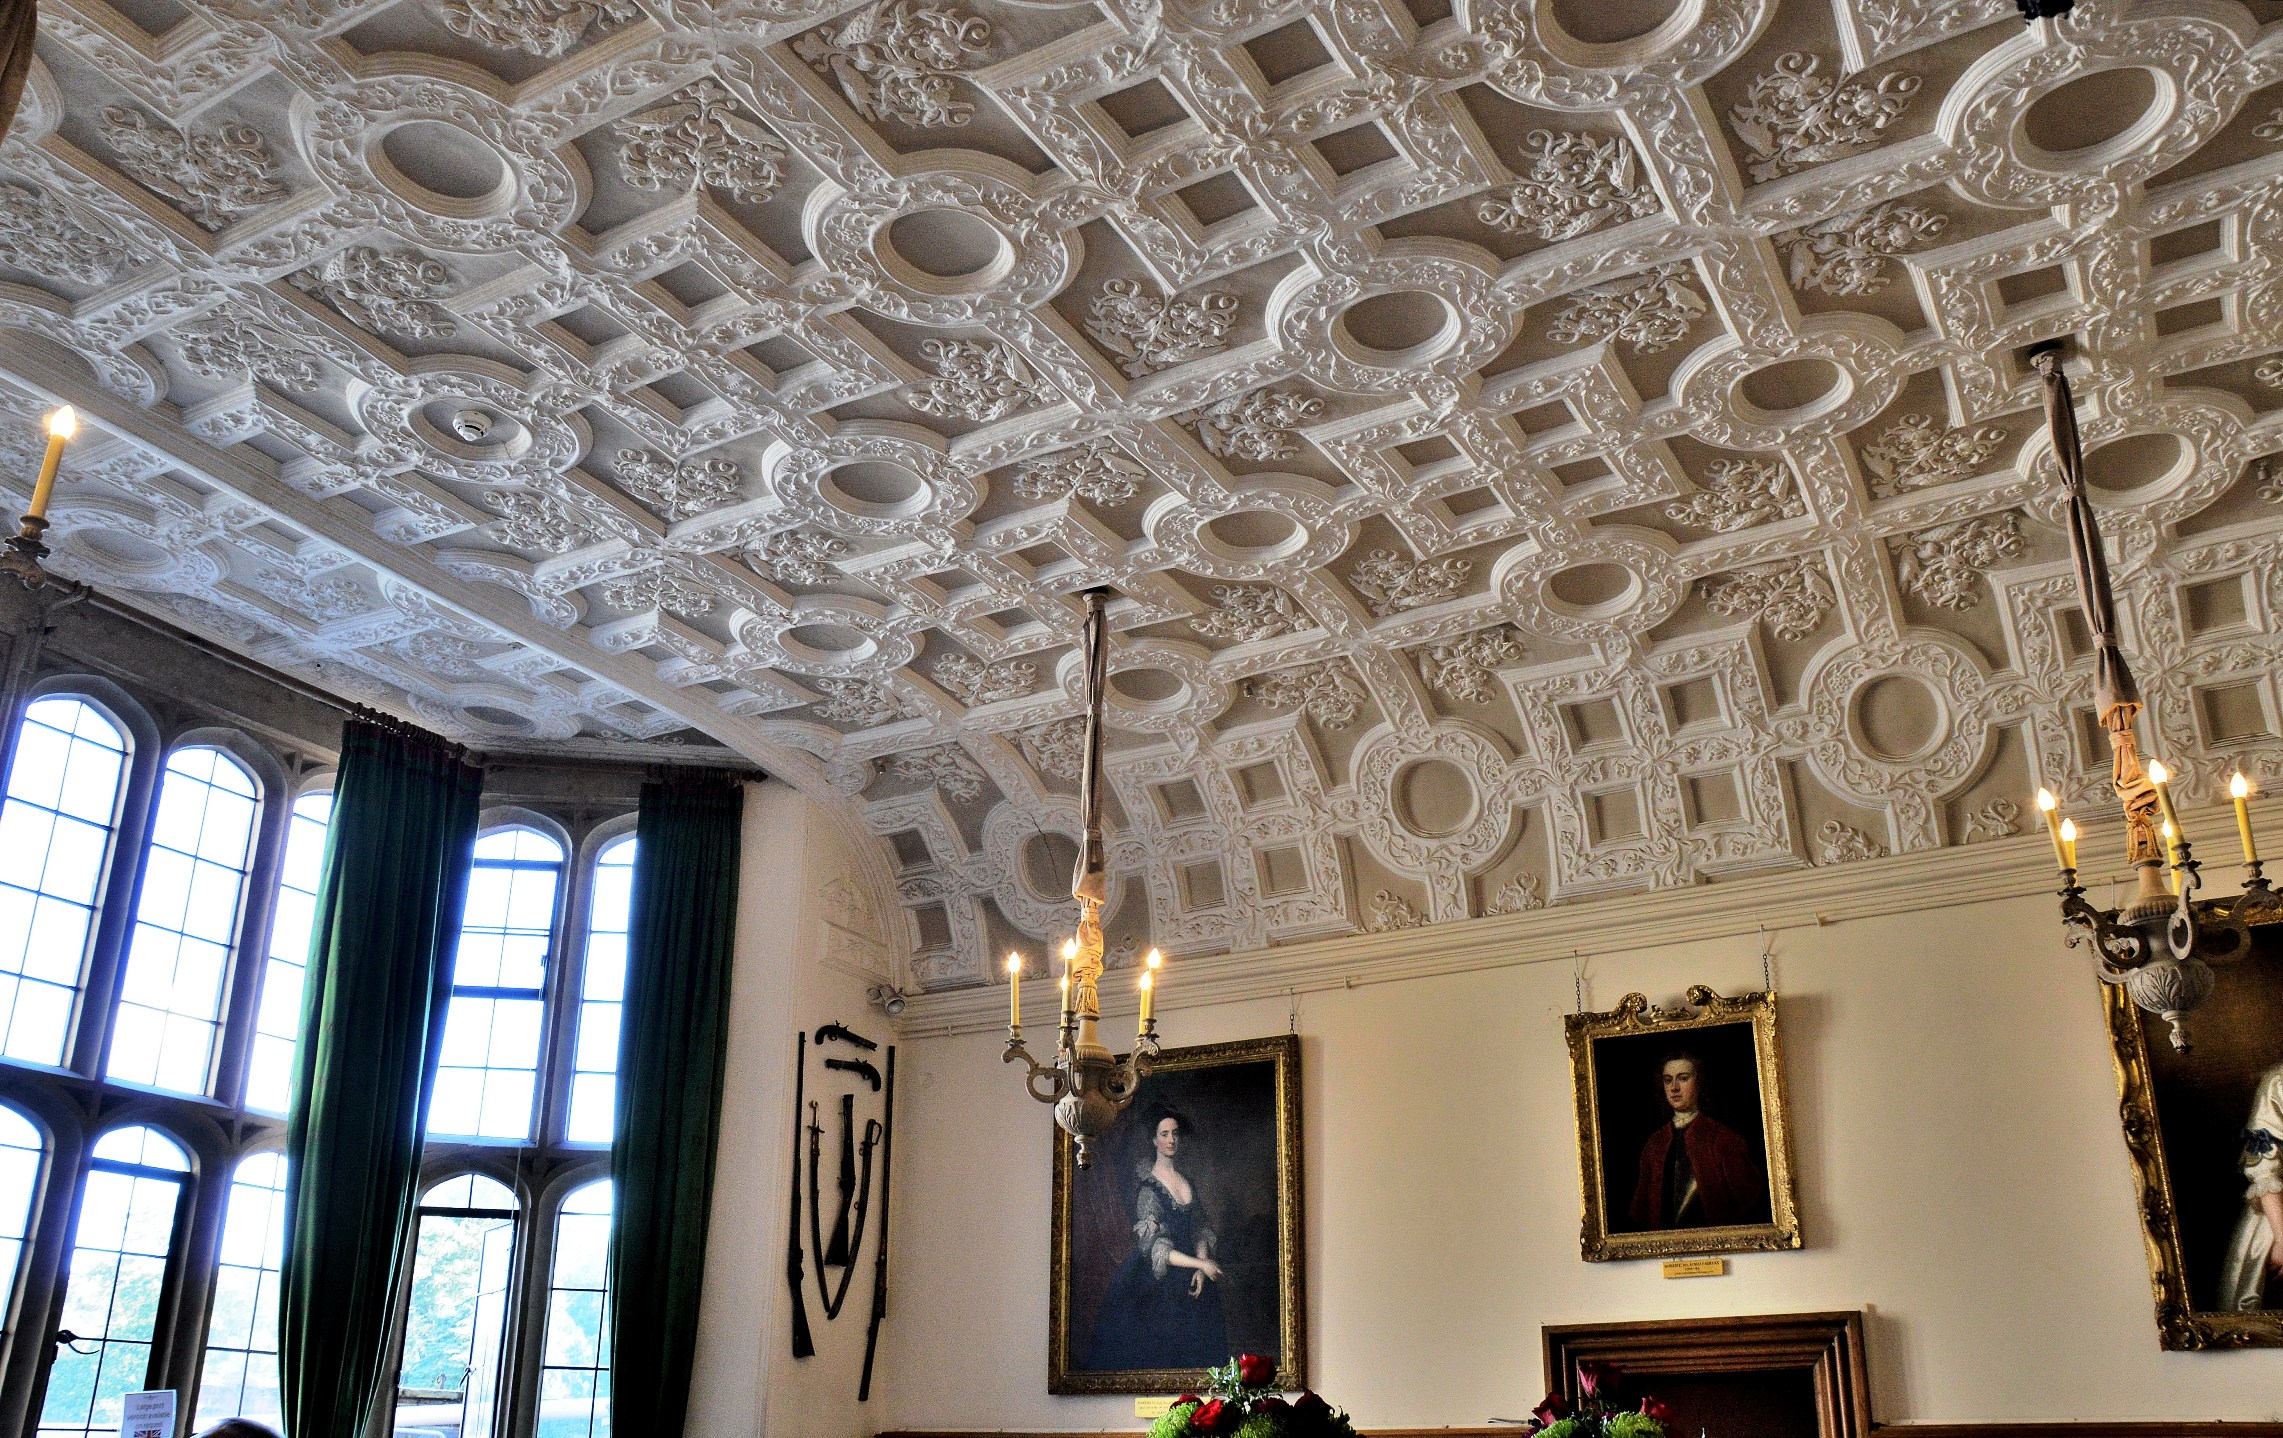 Leeds castle interiors picture this uk for Interior images